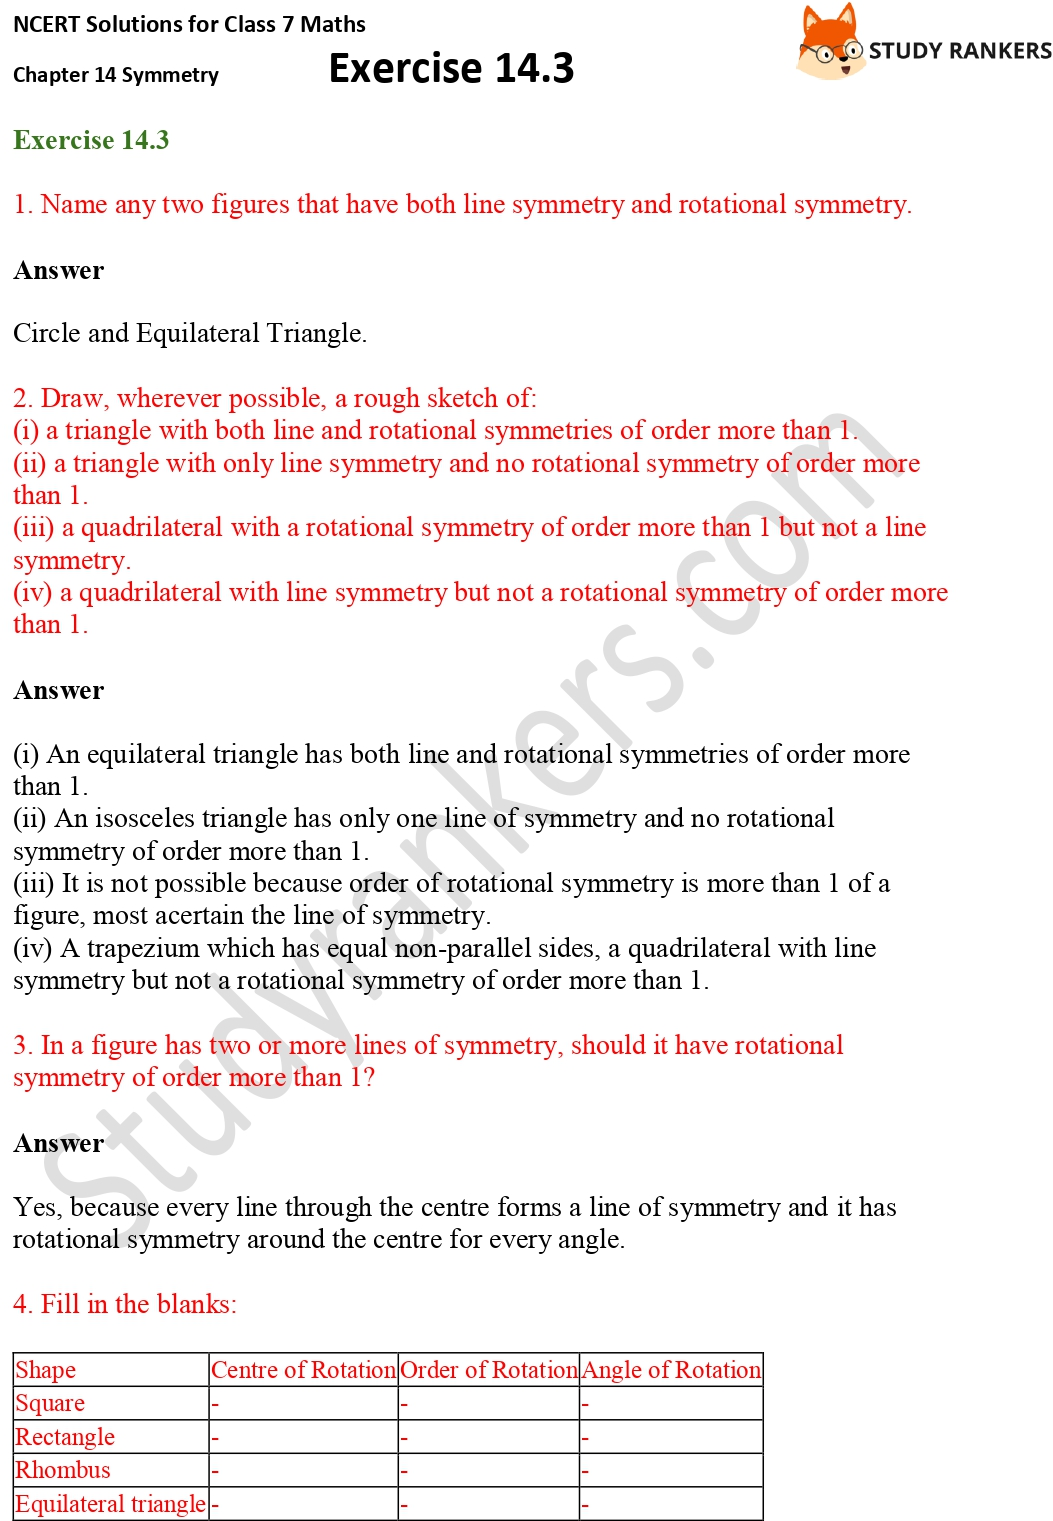 NCERT Solutions for Class 7 Maths Chapter 14 Symmetry Exercise 14.3 Part 1